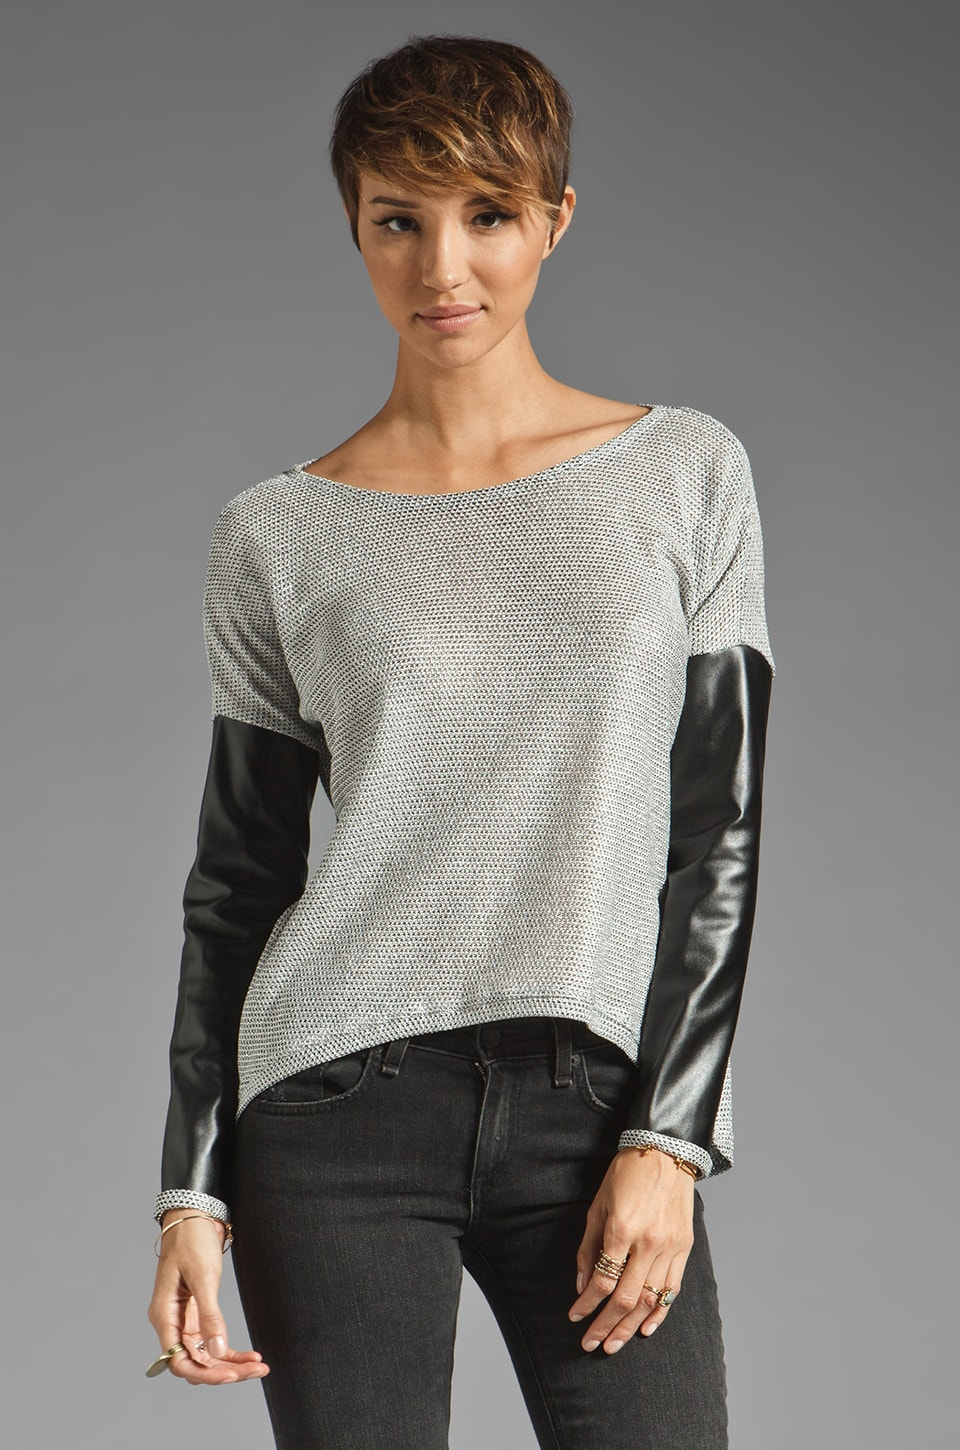 Generation Love Bobo Metallic Leather Sleeve Combo Sweater in Silver/Black